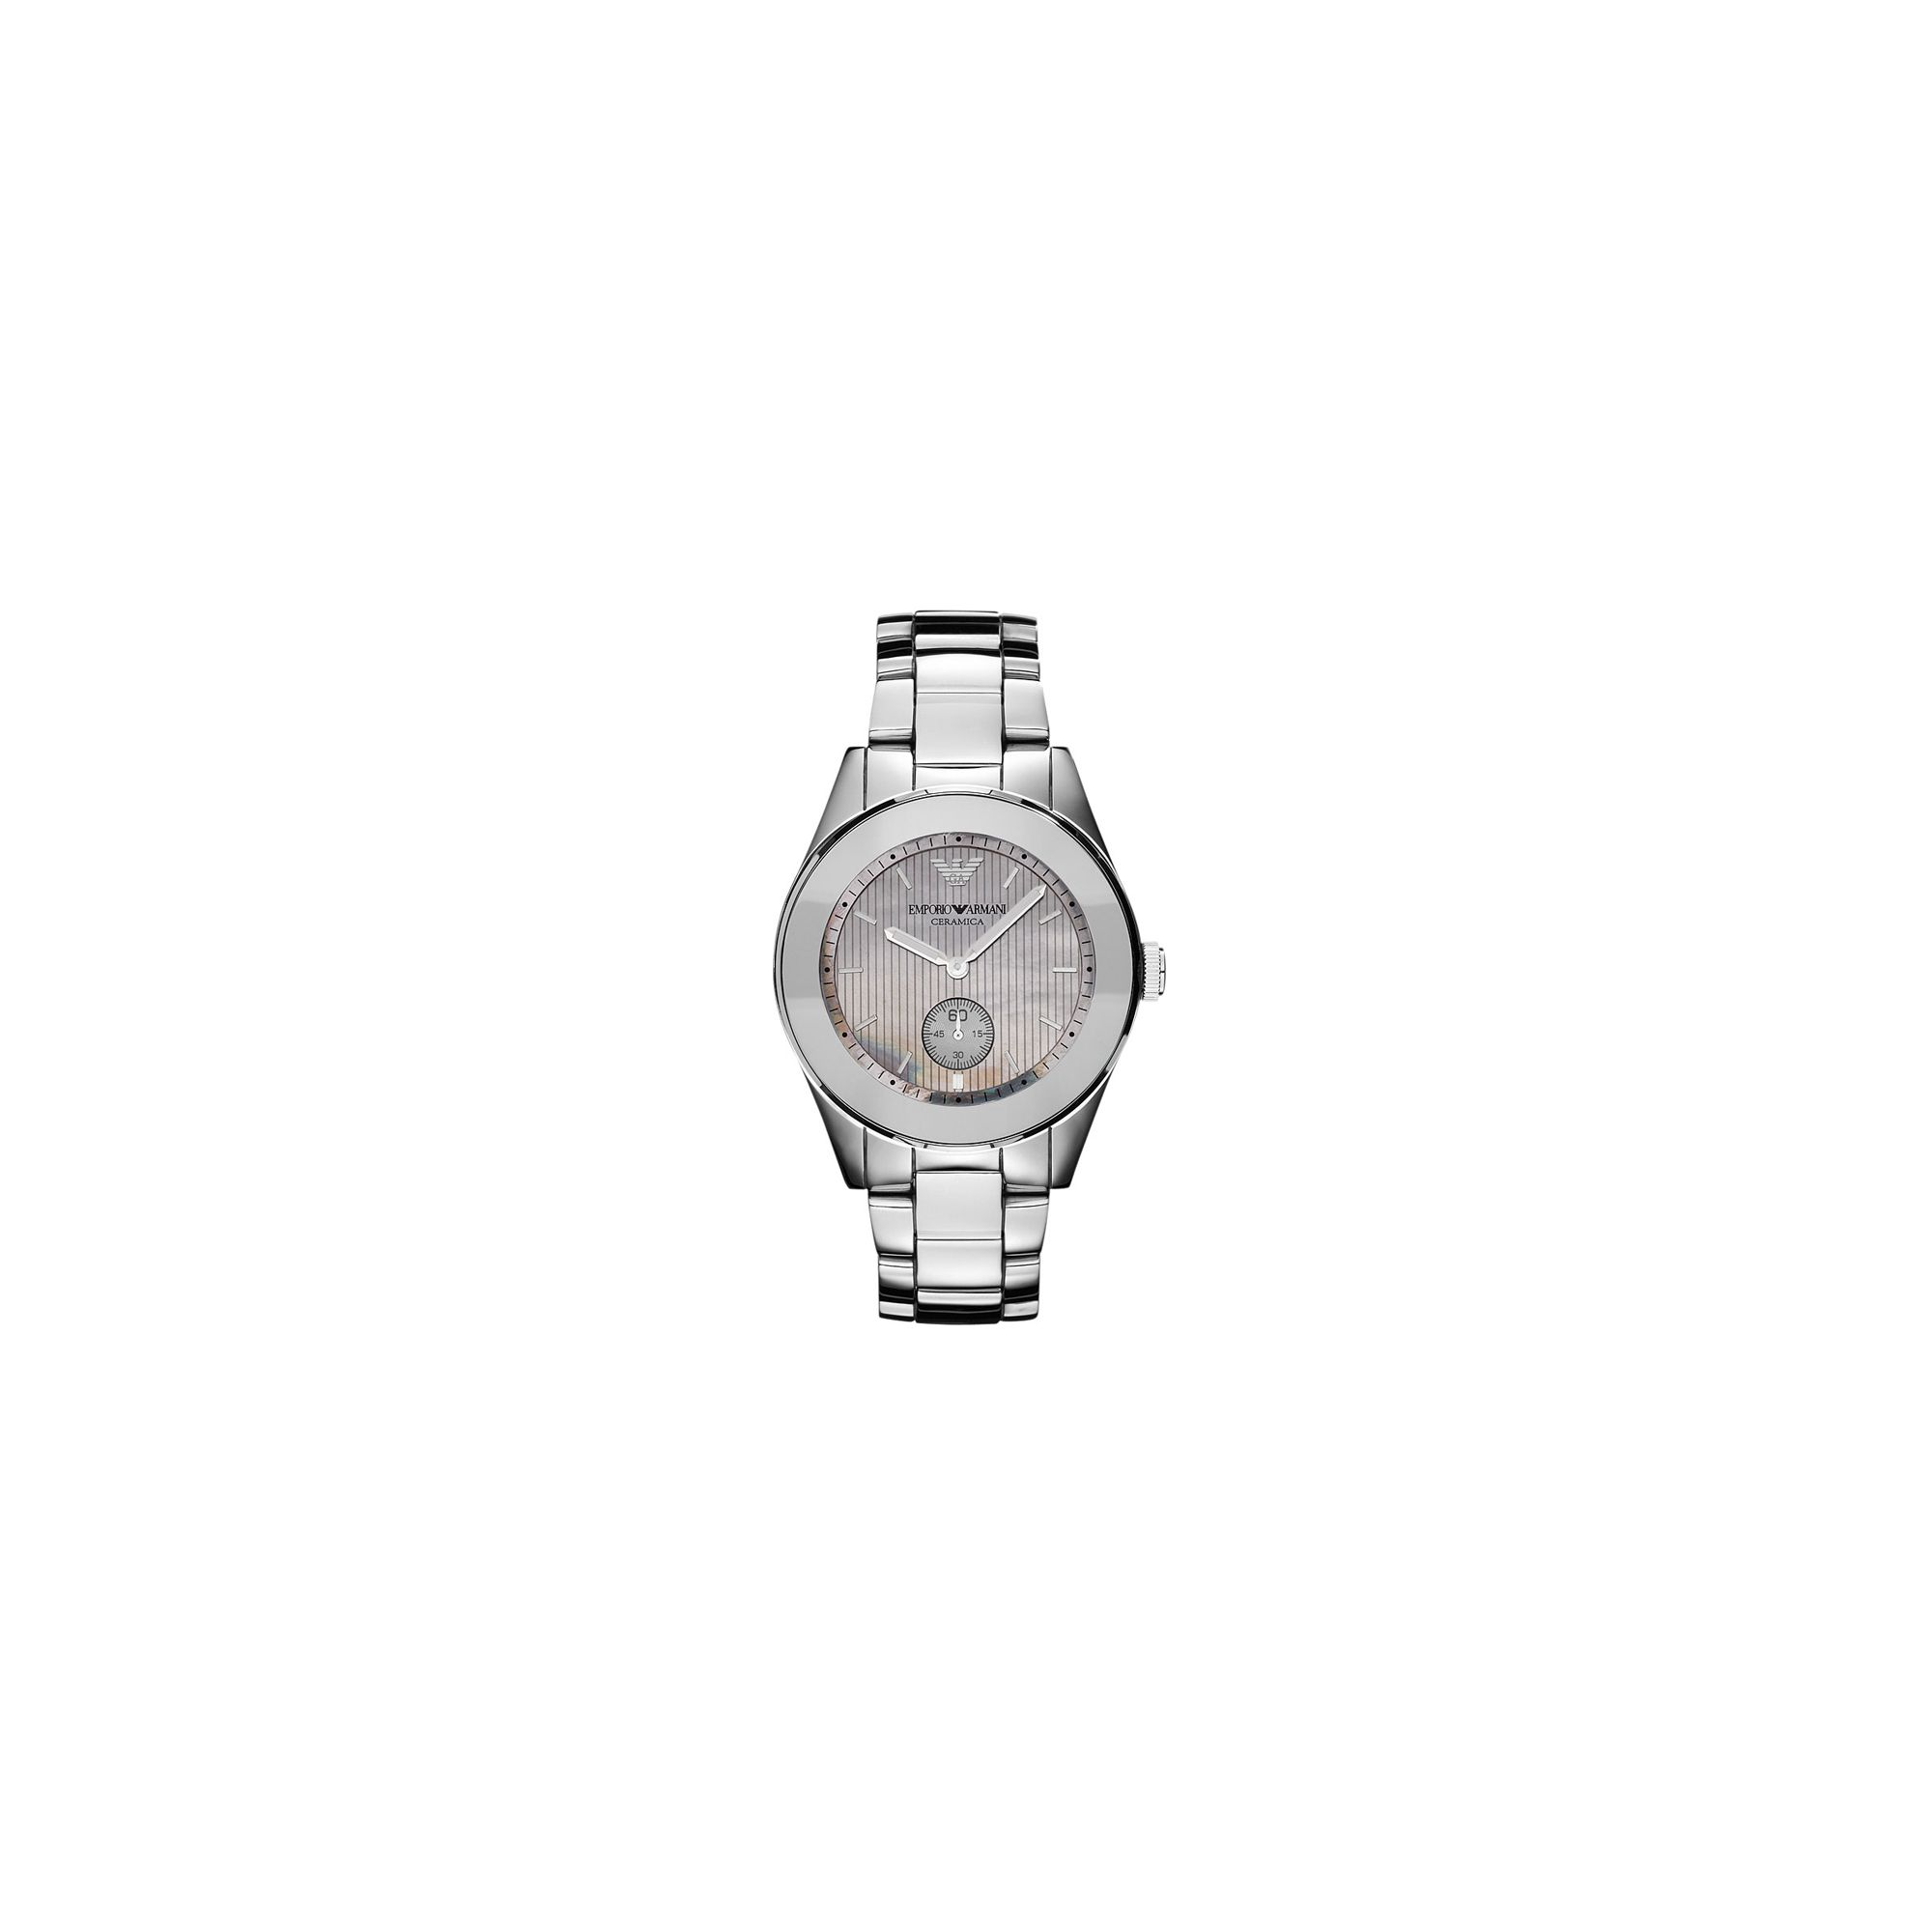 Emporio Armani Ladies Leo Ceramic Watch AR1463 at Tesco Direct